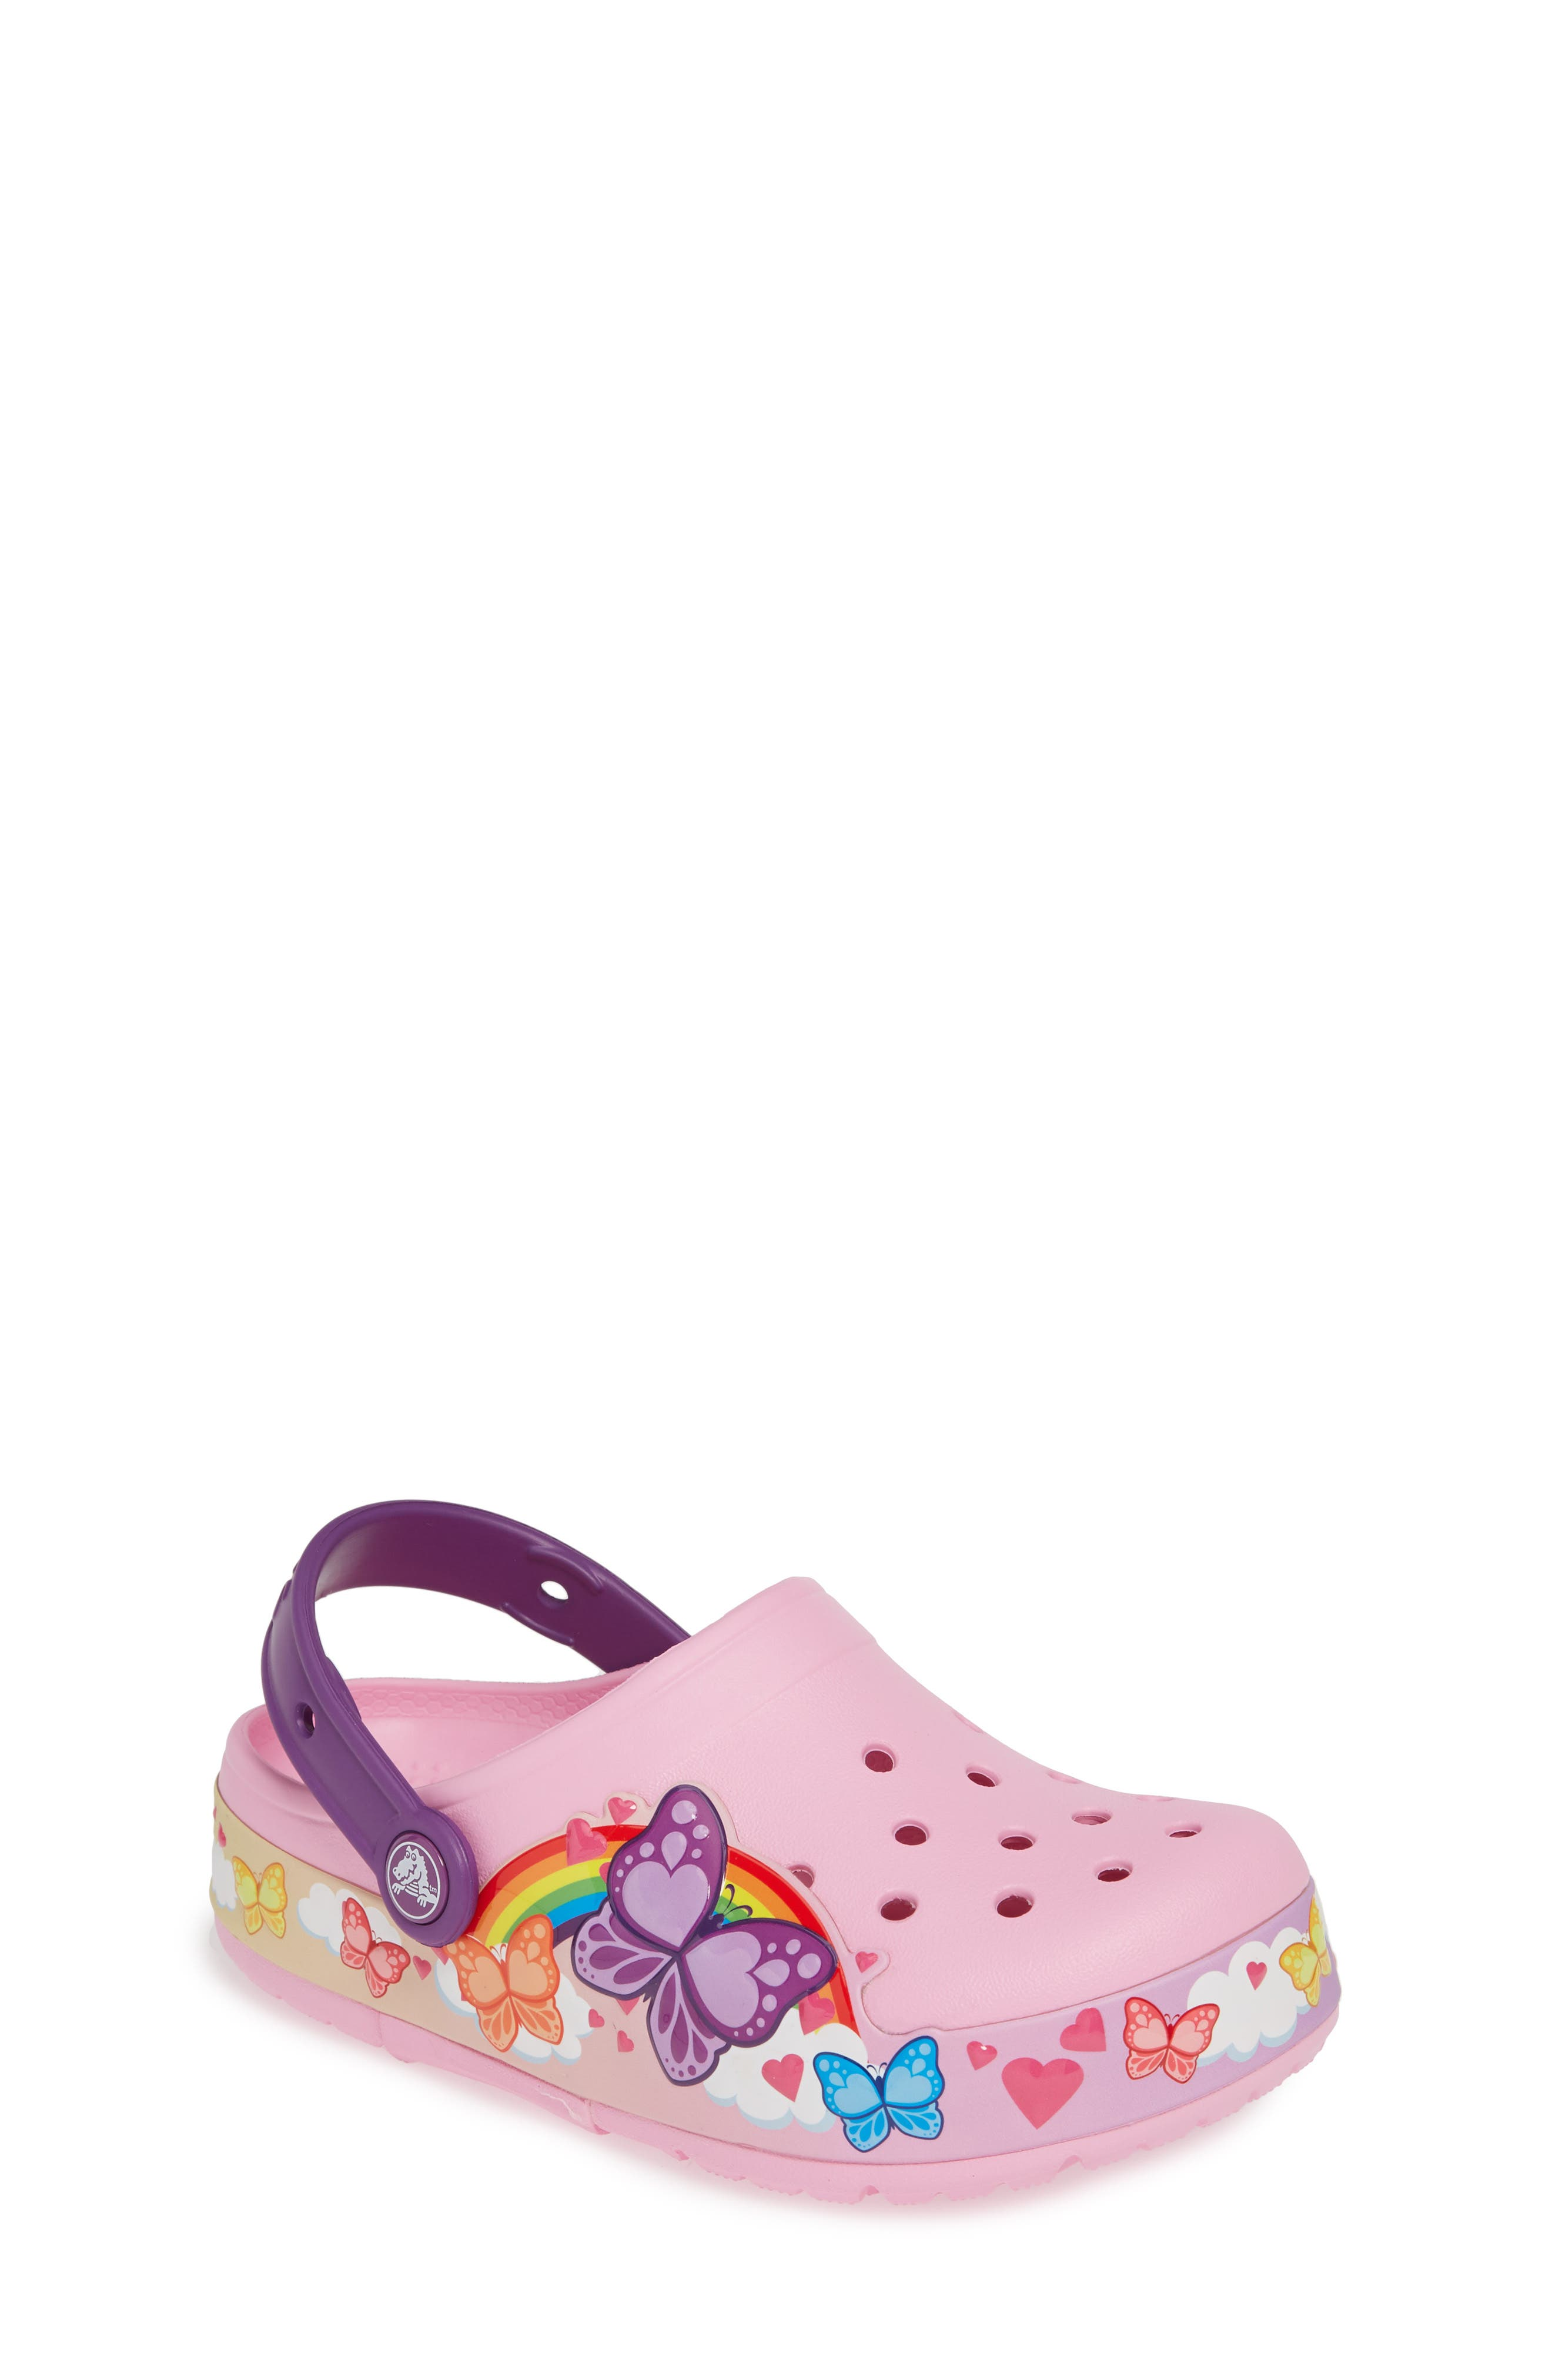 Fun Lab Butterflyband Light-Up Slip-On, Main, color, 652